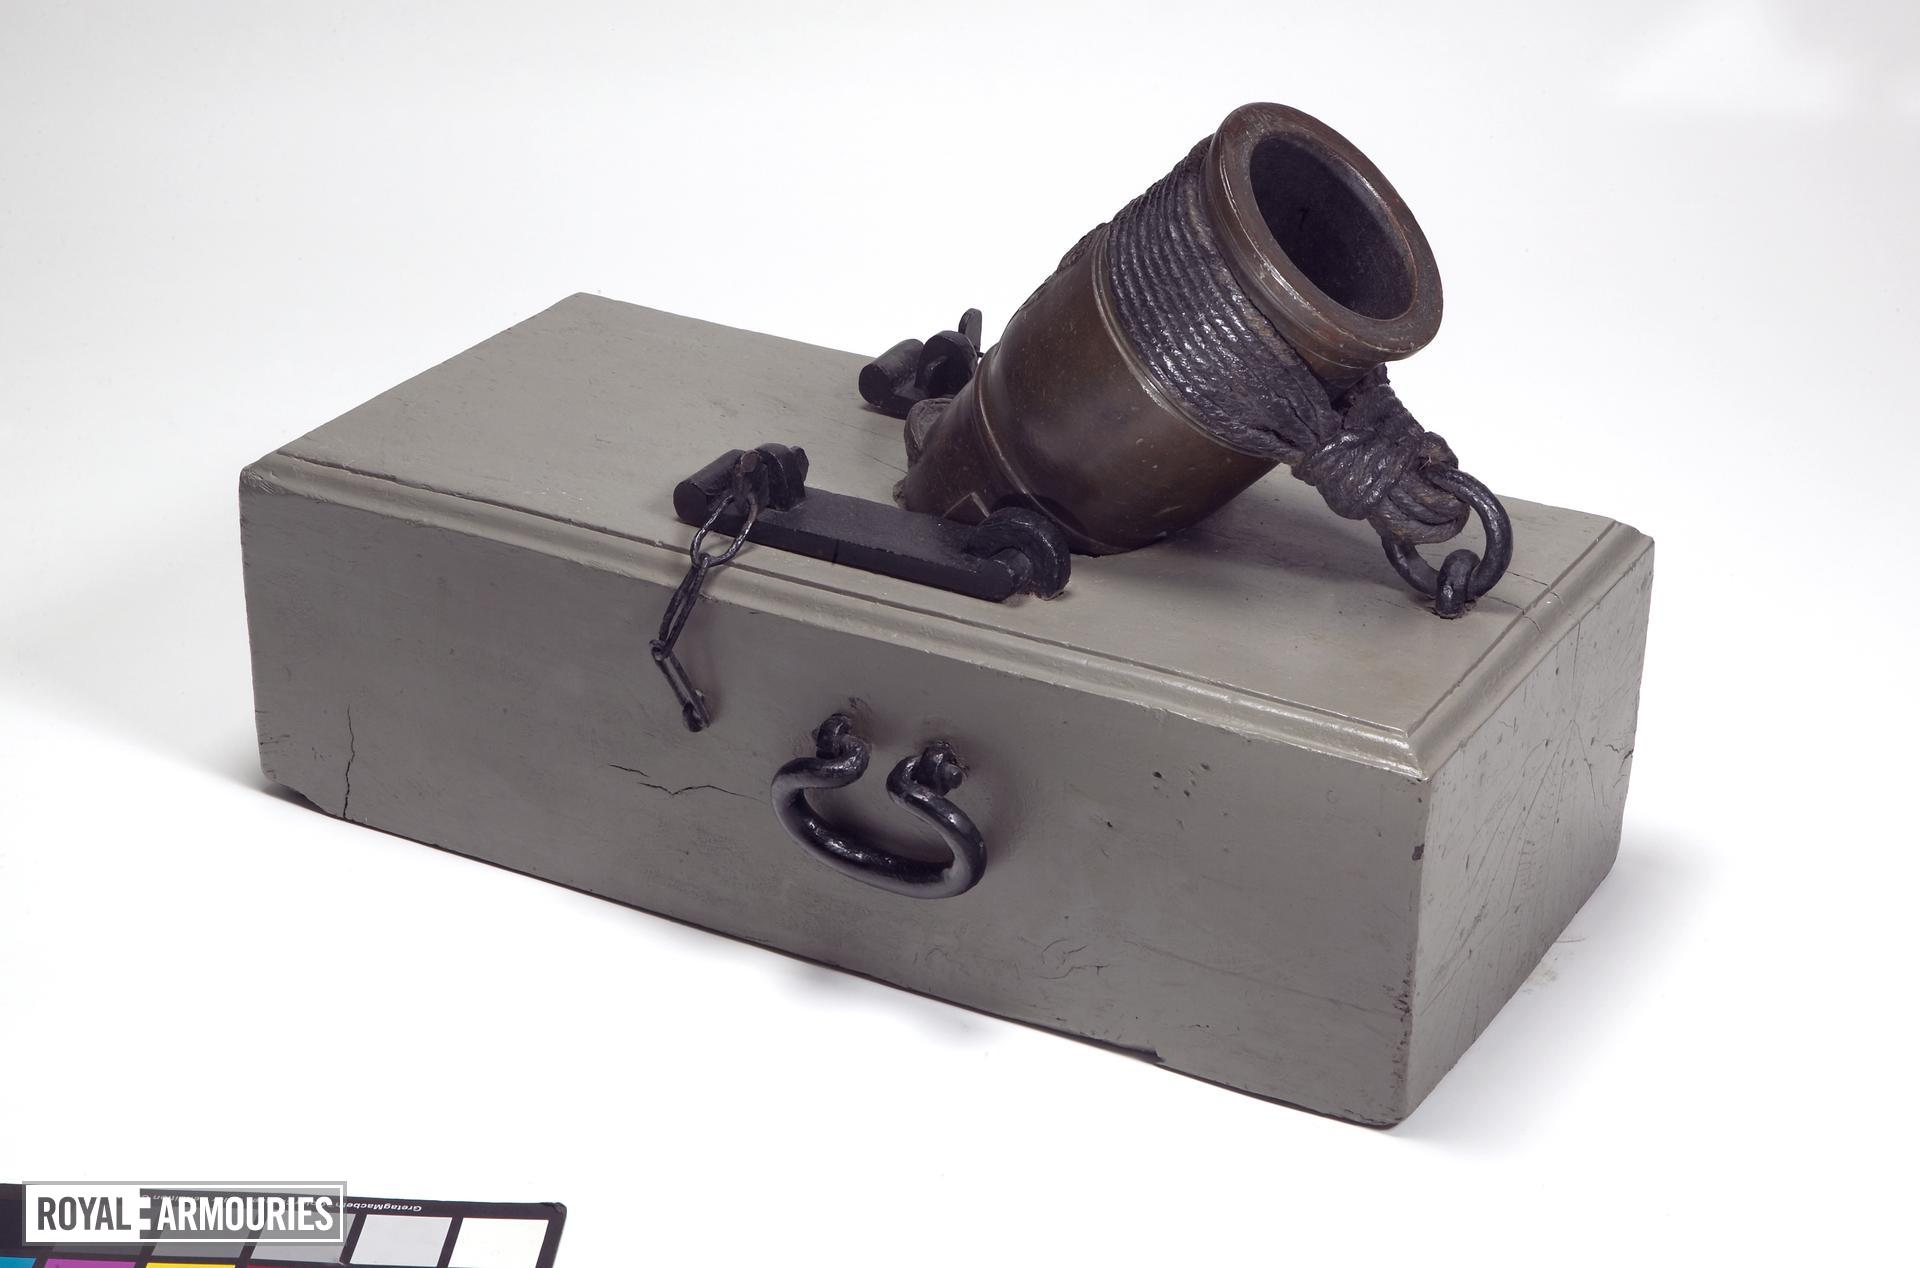 4.5 in mortar and bed - Coehorn mortar